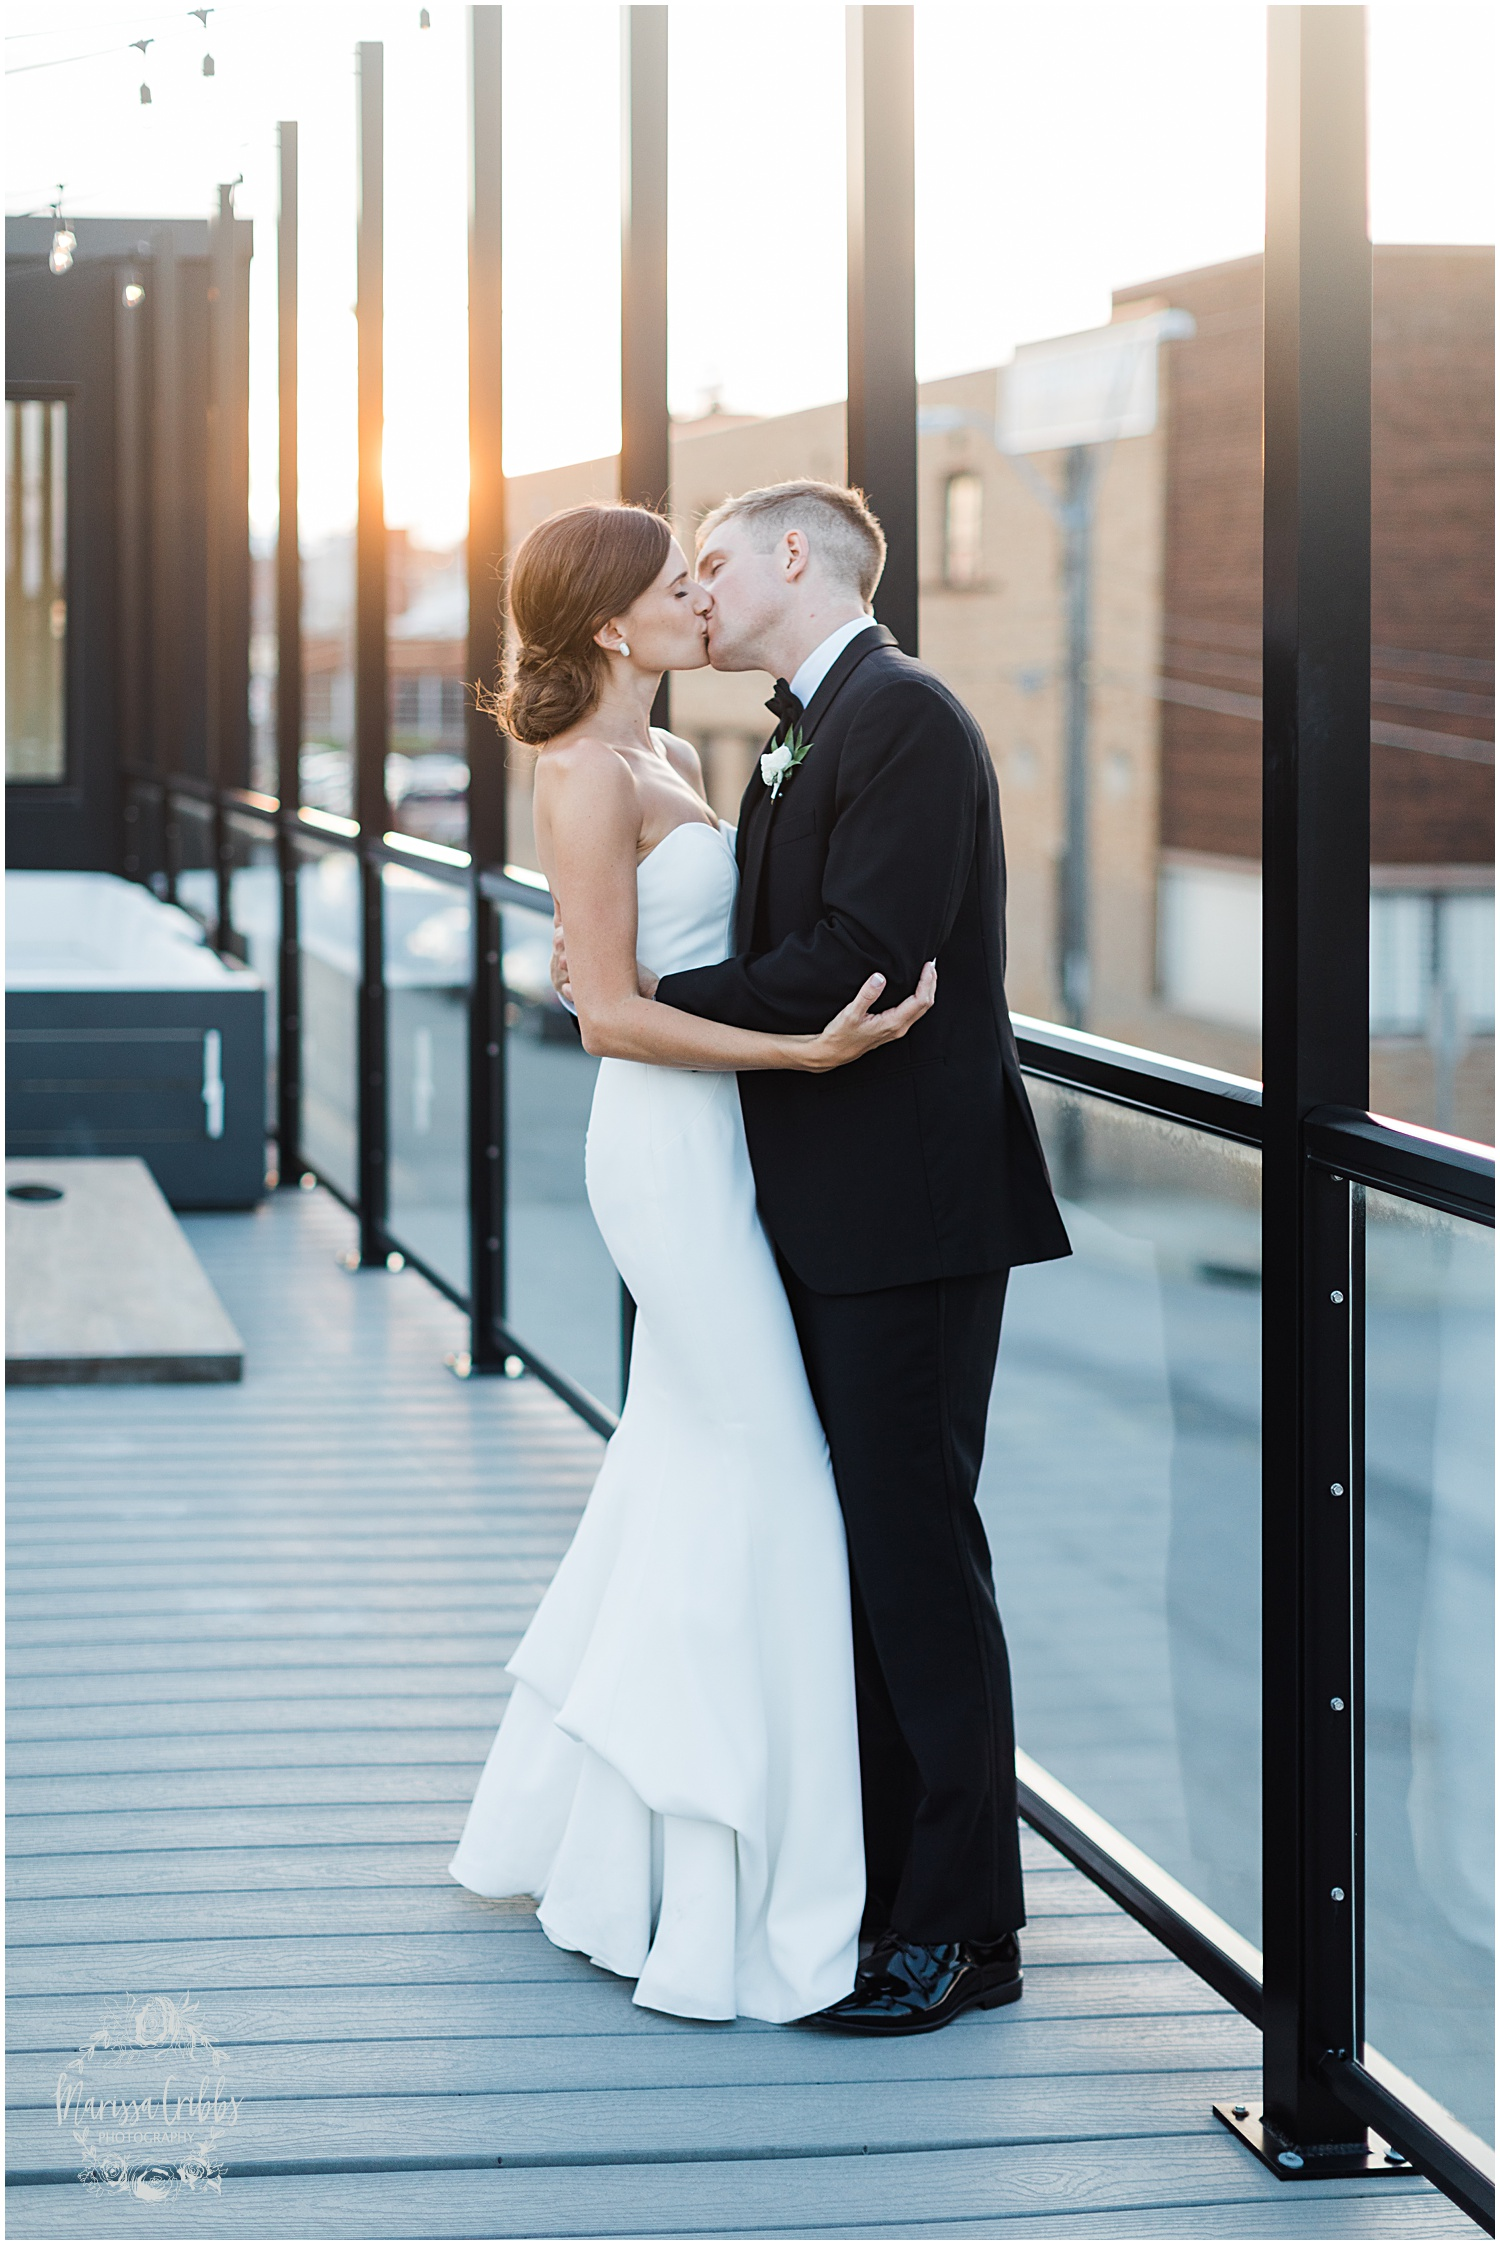 JOANNE & GEORGE MARRIED BLOG | MARISSA CRIBBS PHOTOGRAPHY | THE ABBOTT | KANSAS CITY WEDDING PHOTOS_9164.jpg